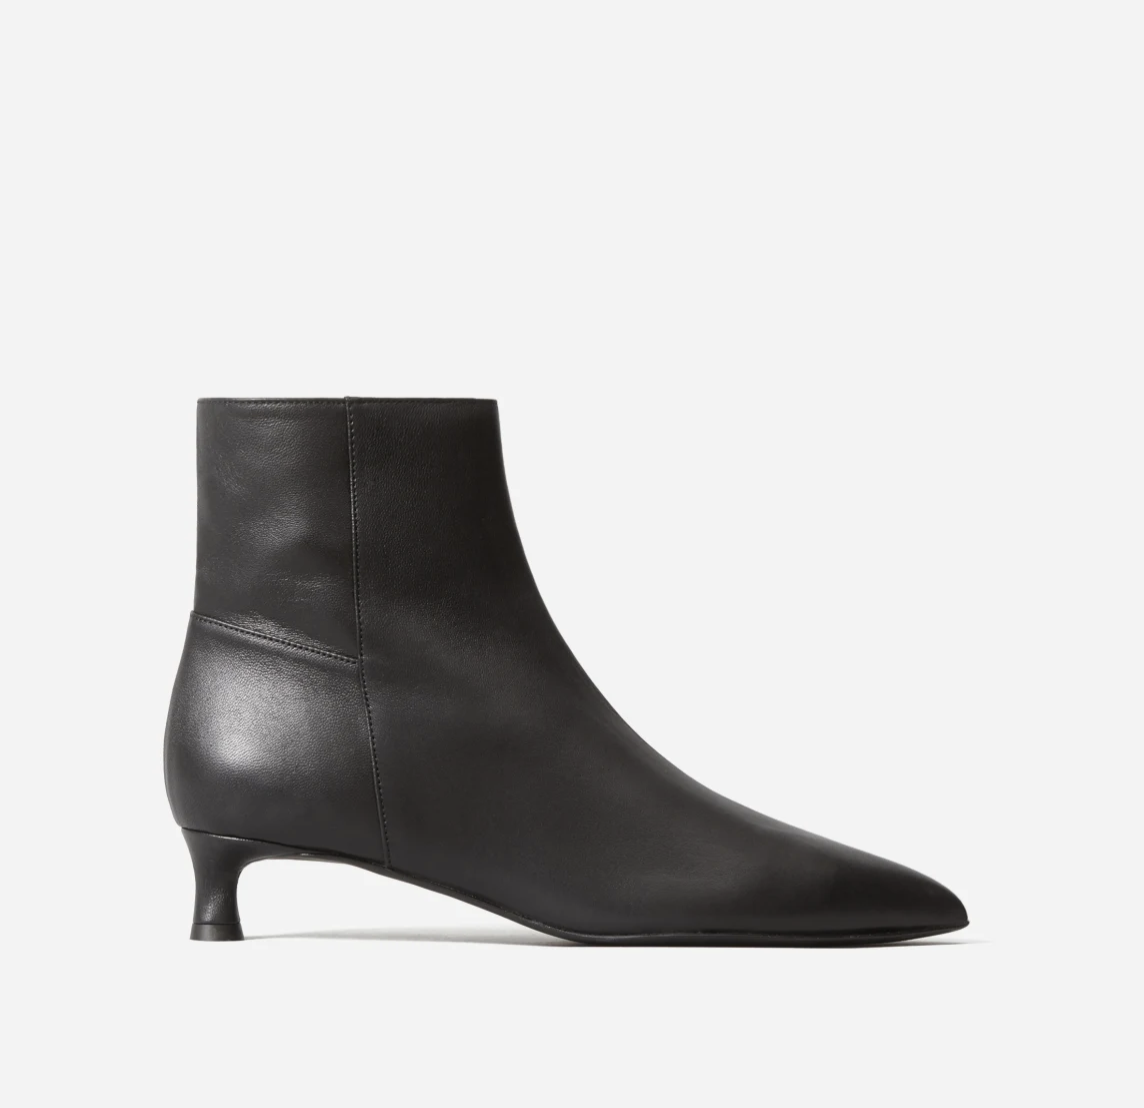 everlane-editor-boot.png